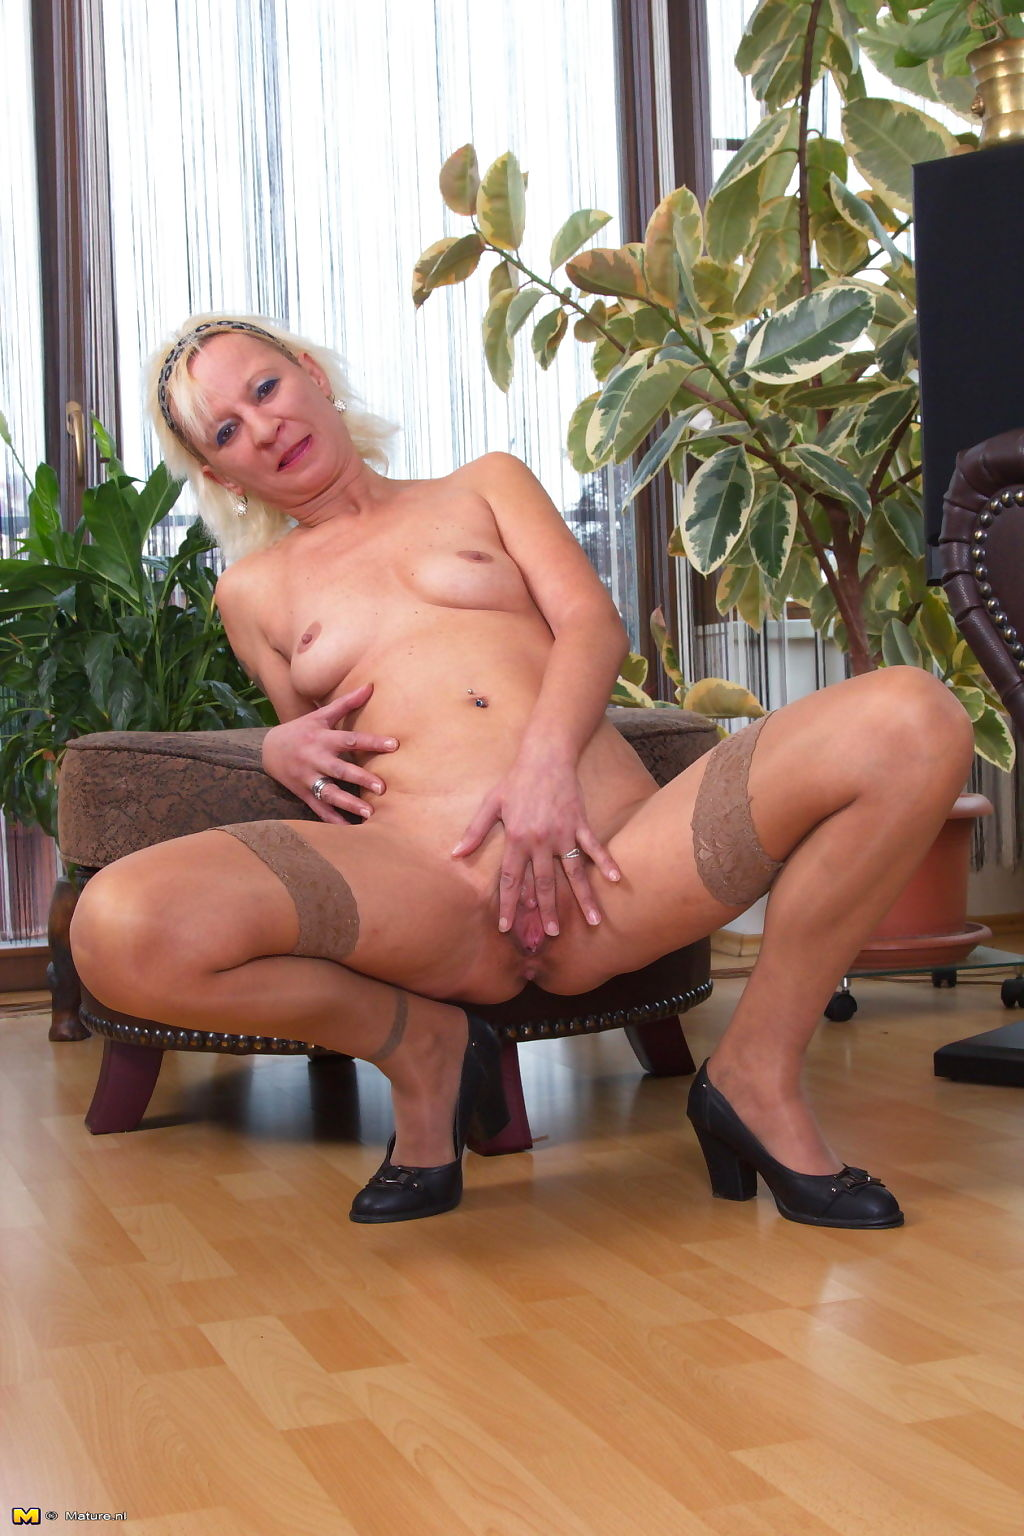 Naughty blonde housewife playing alone - part 793